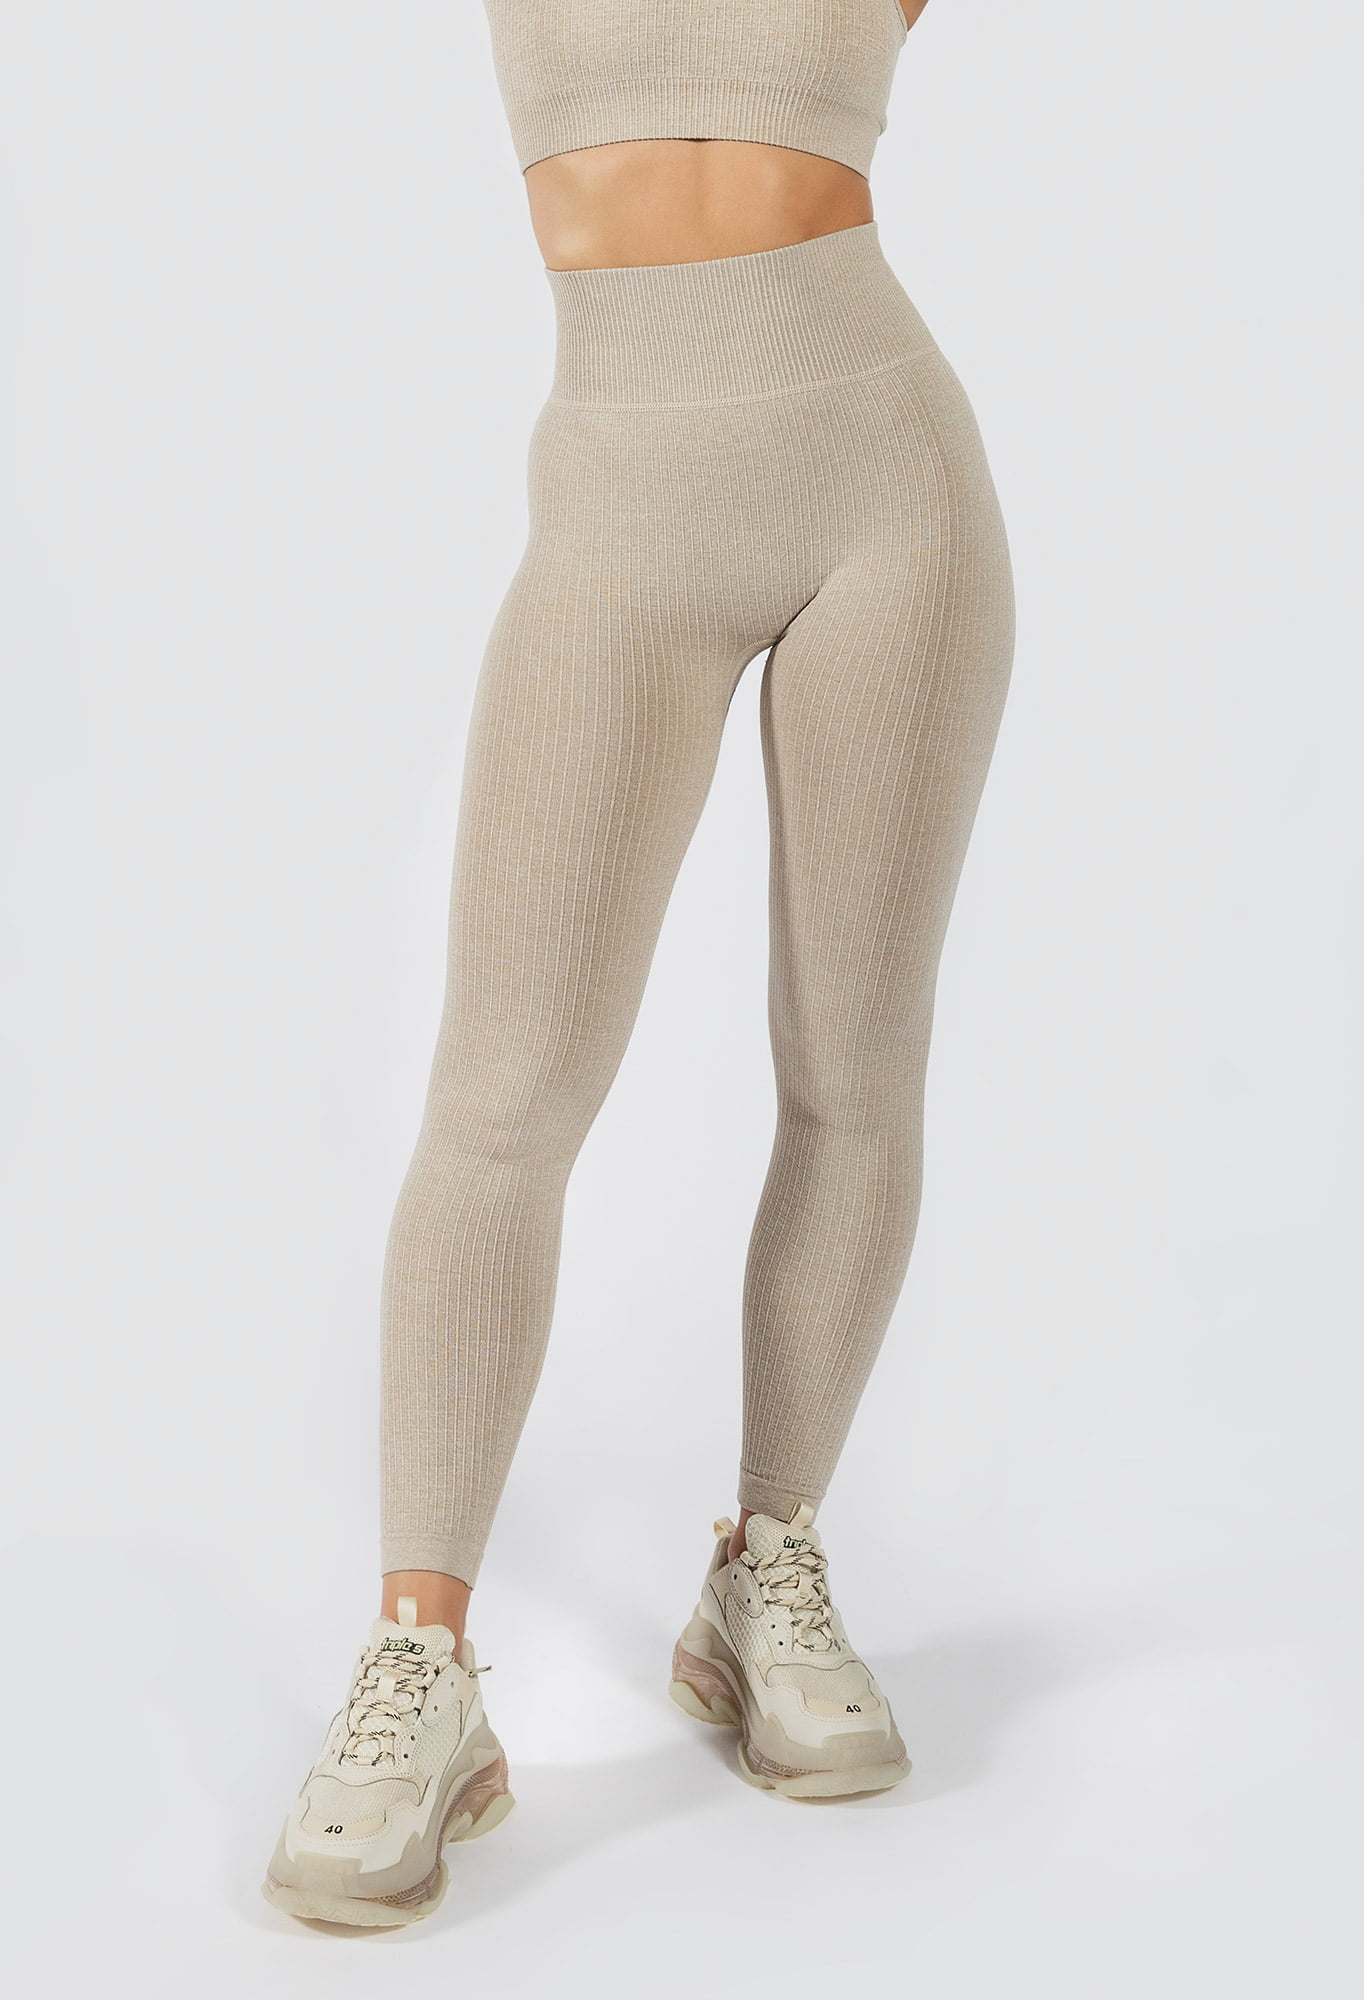 Muki women's seamless legging in beige